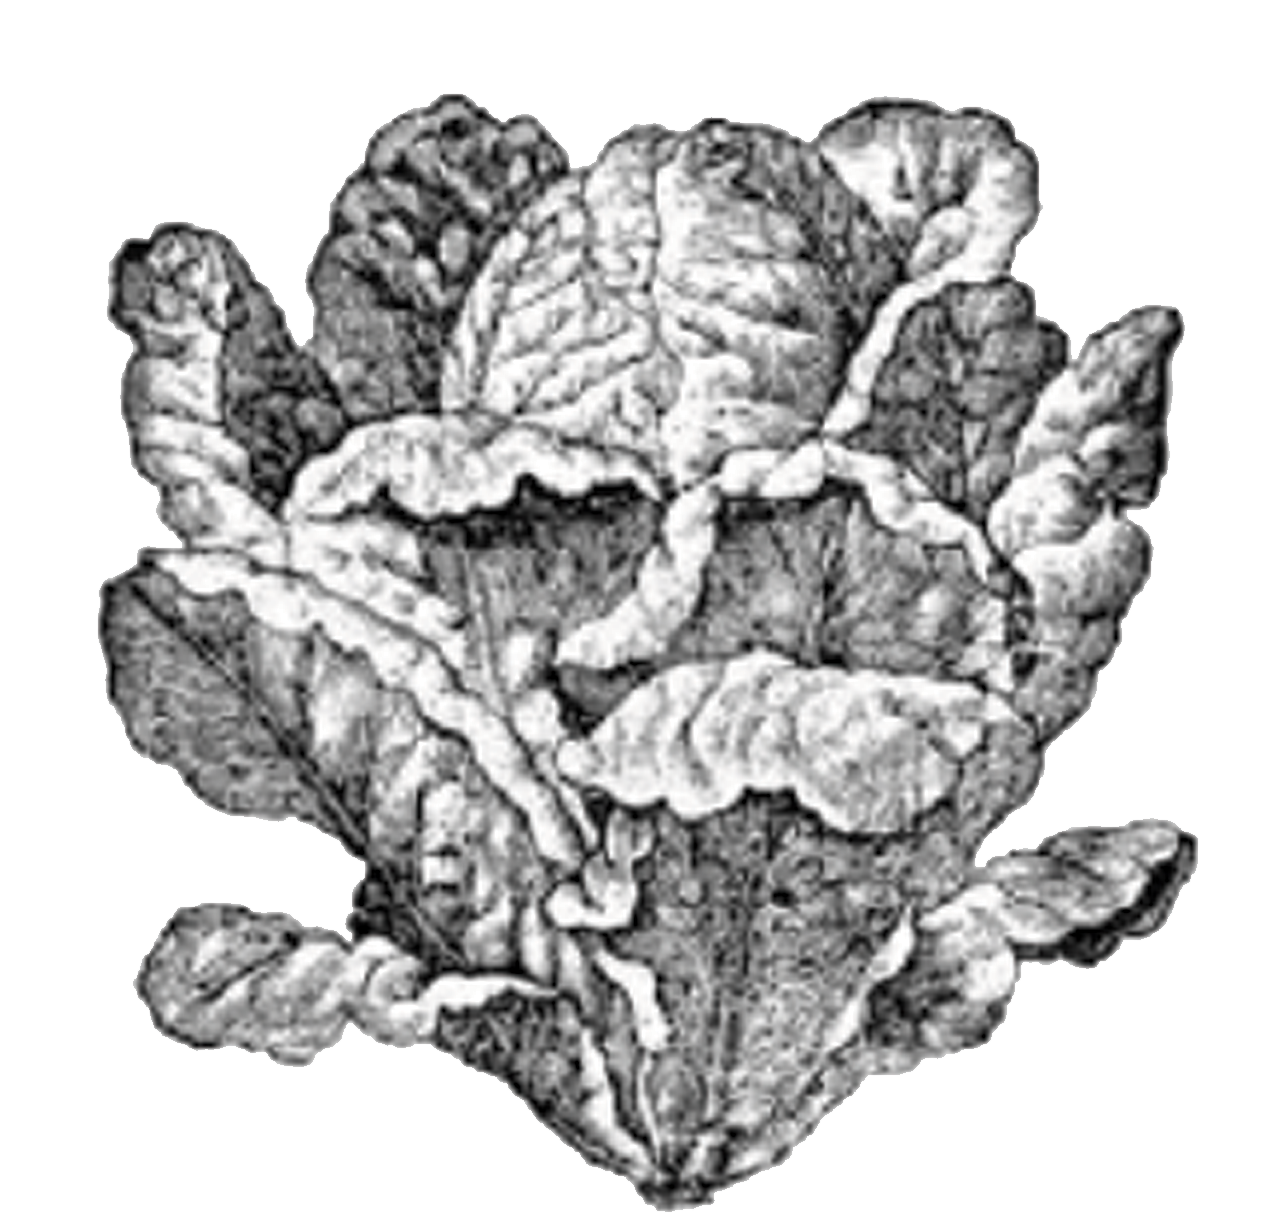 Illustration of a head of lettuce